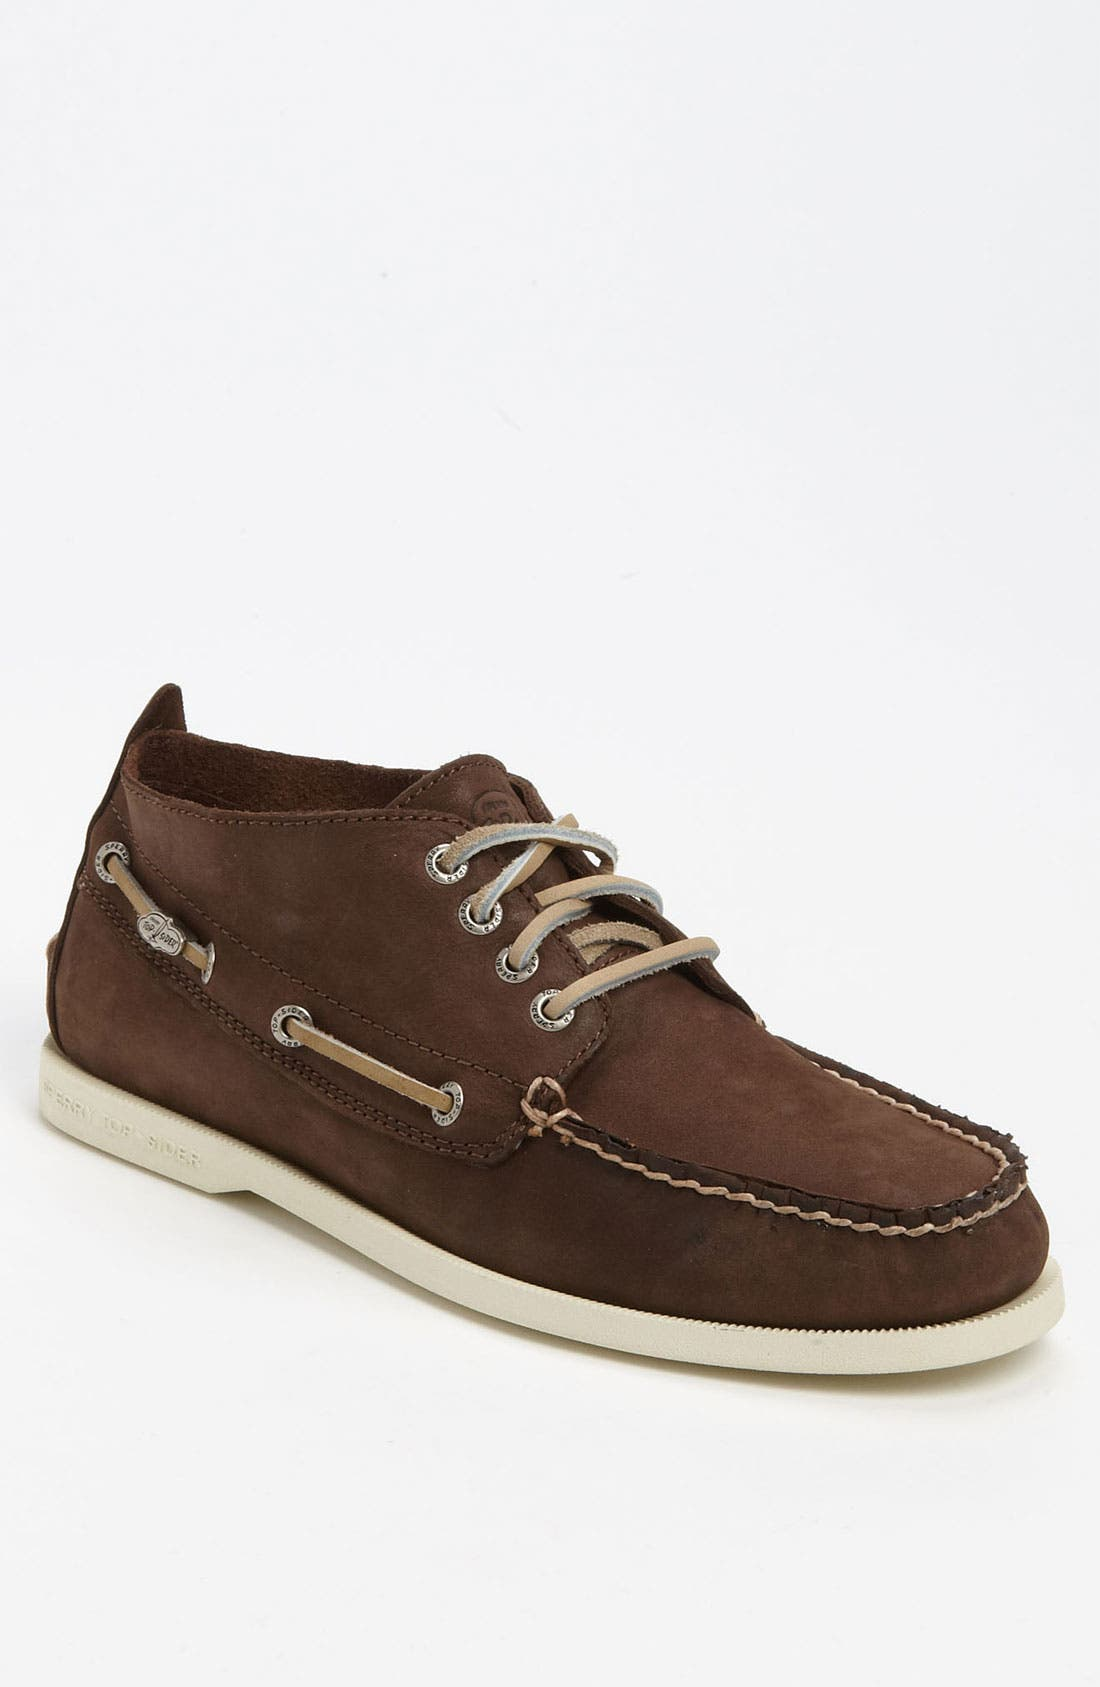 Alternate Image 1 Selected - Sperry Top-Sider® 'Authentic Original' Chukka Boot